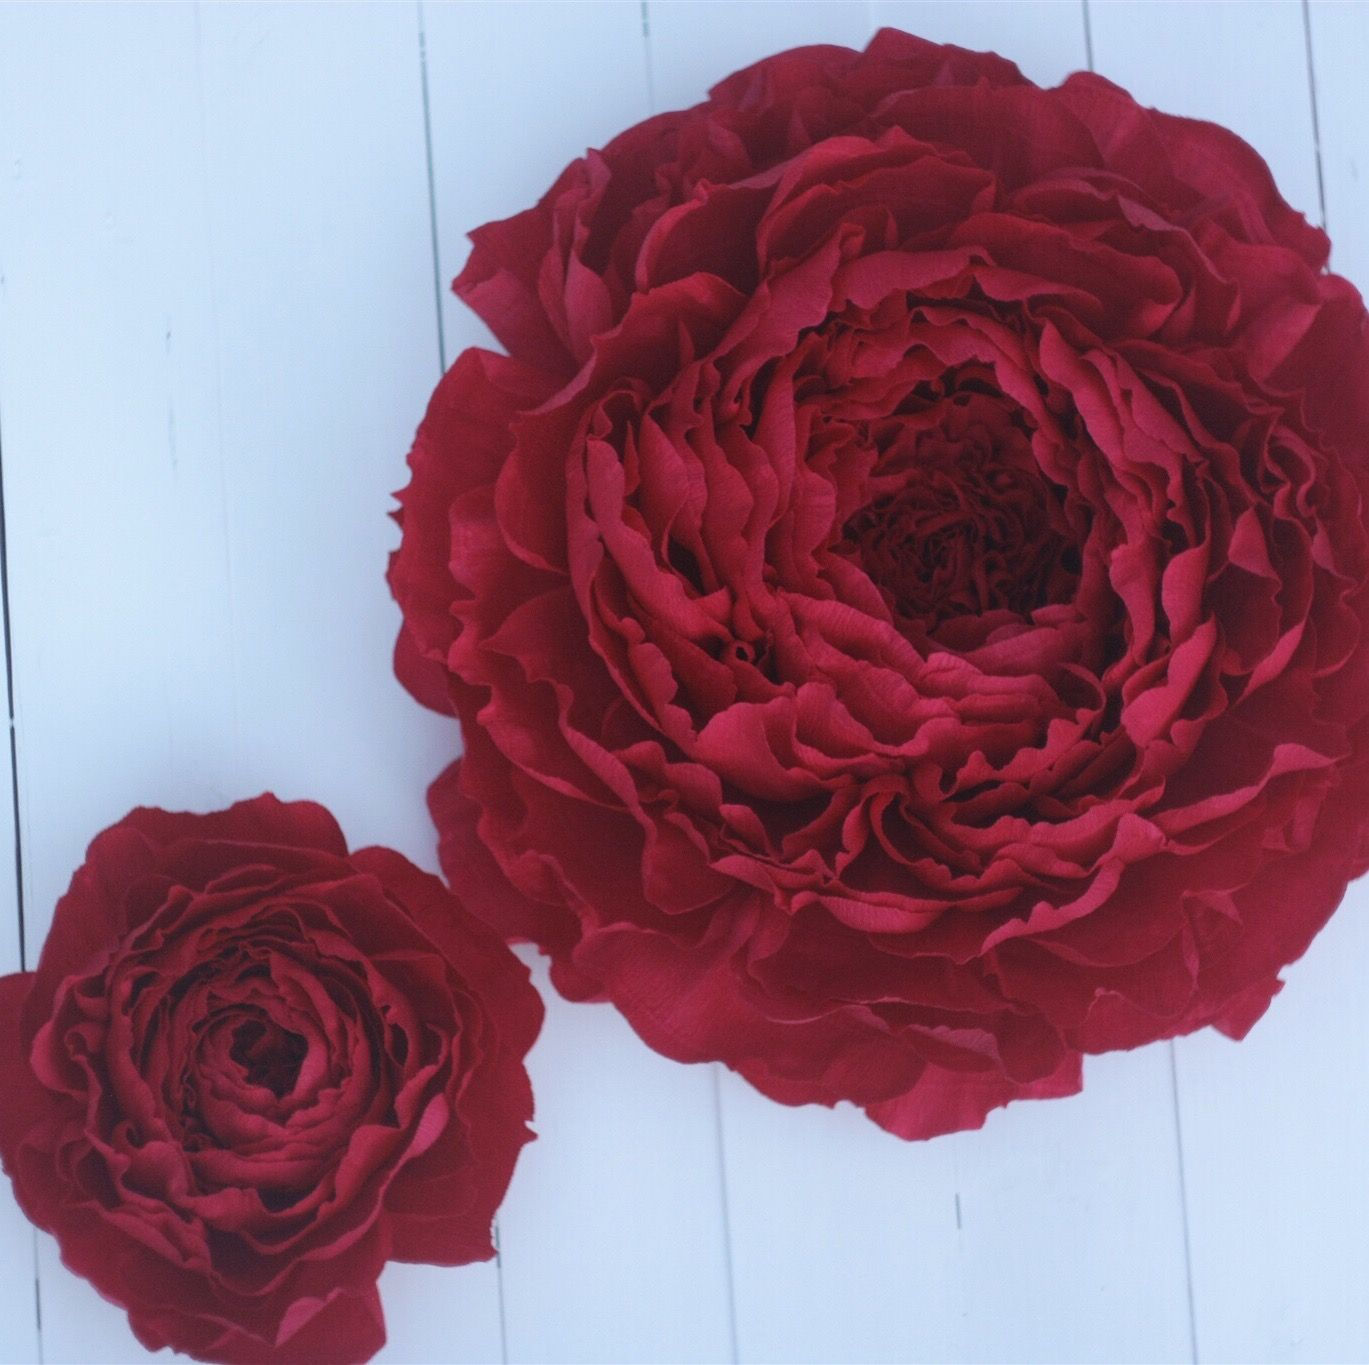 Our luxuriant red paper flowers.